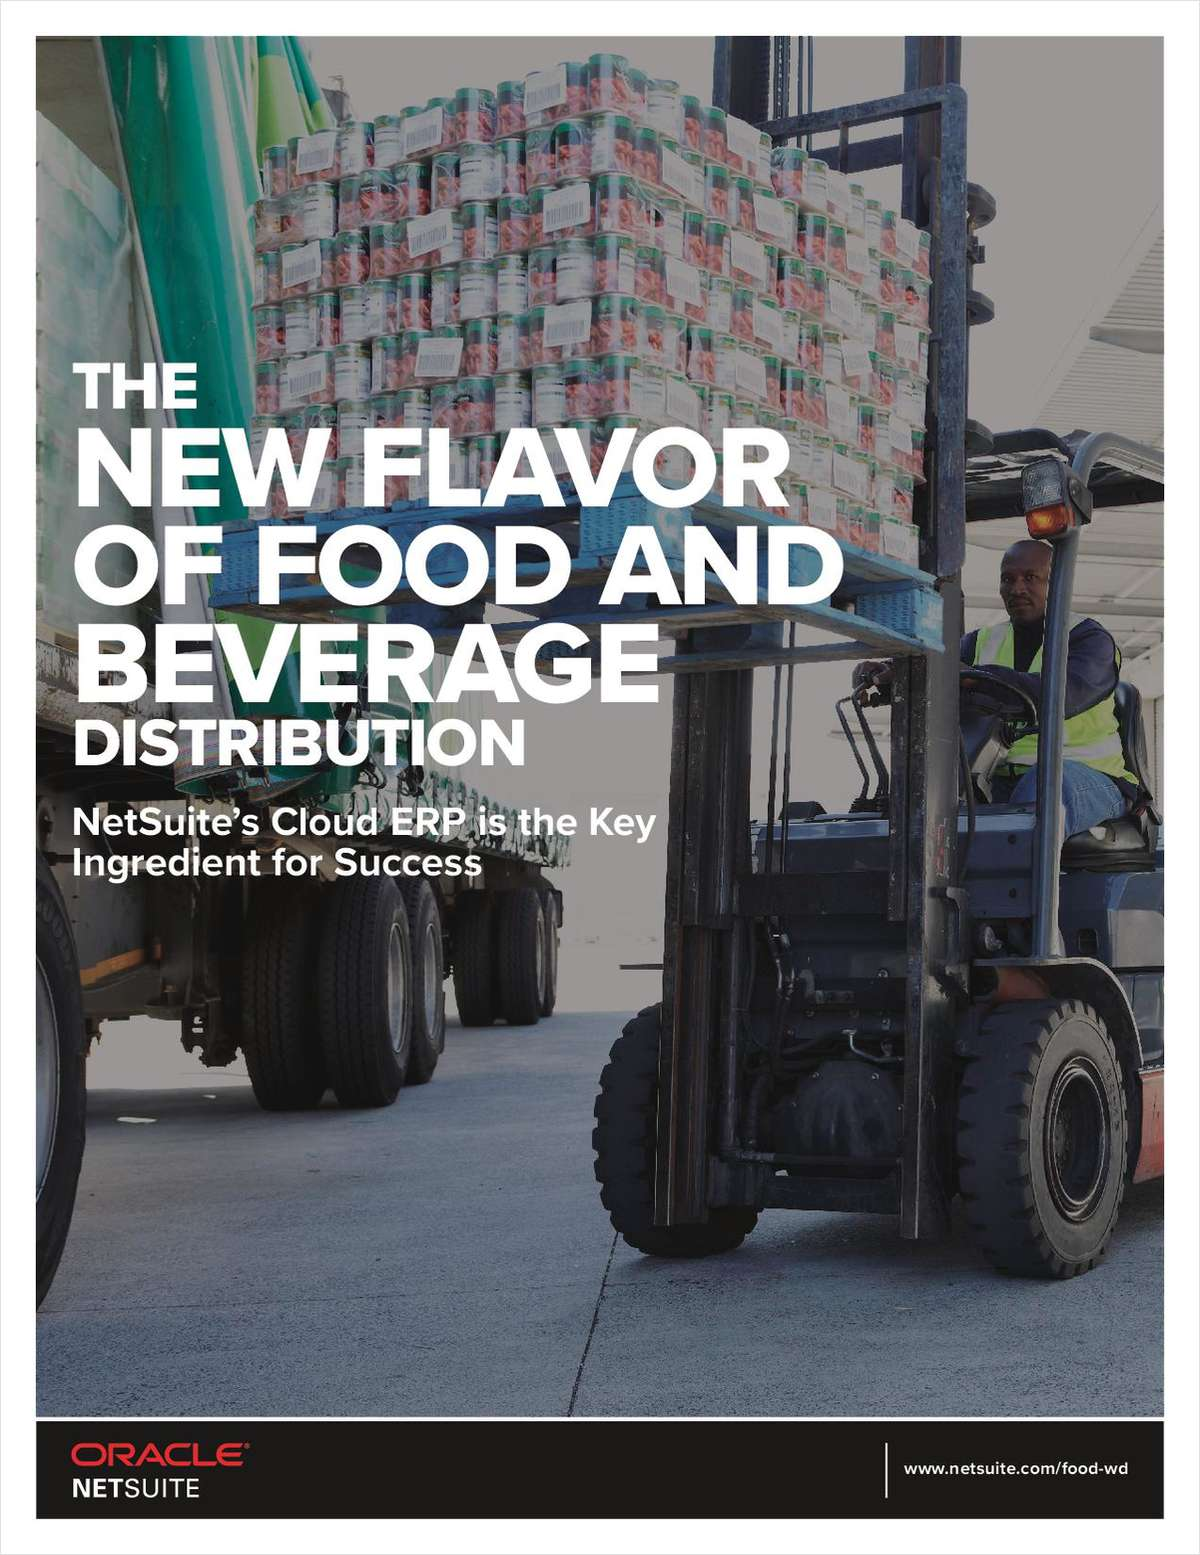 The New Flavor of Food and Beverage Distribution: NetSuite's Cloud ERP is the Key Ingredient for Success